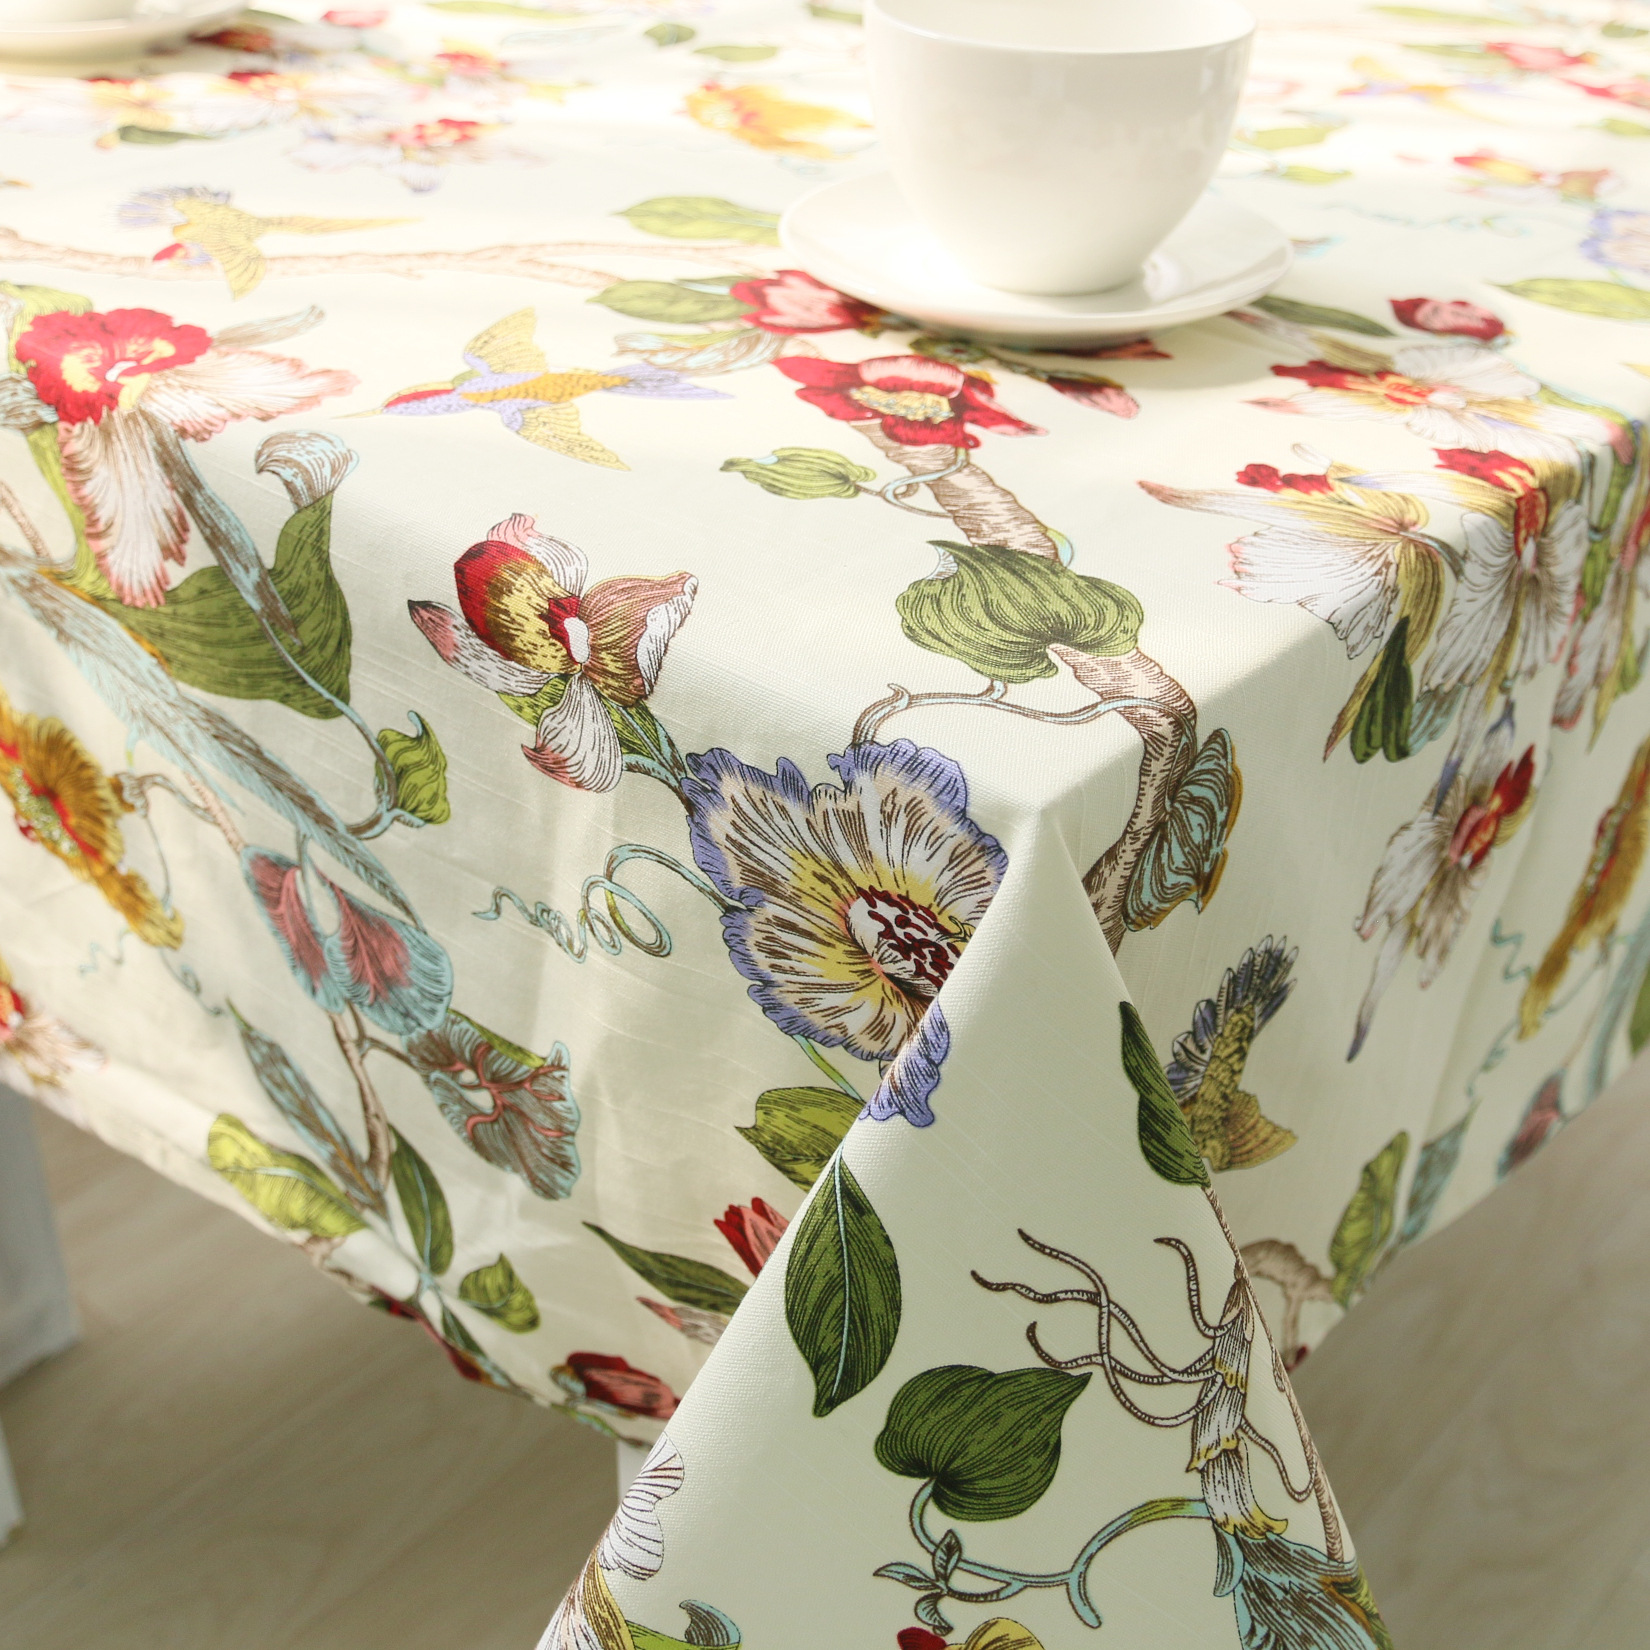 Chinese Style Floral Table Cloth Cotton Table Cover Toalha De Mesa Mantel Nappe Wedding Tablecloths For Garden Tables ZB-76(China (Mainland))